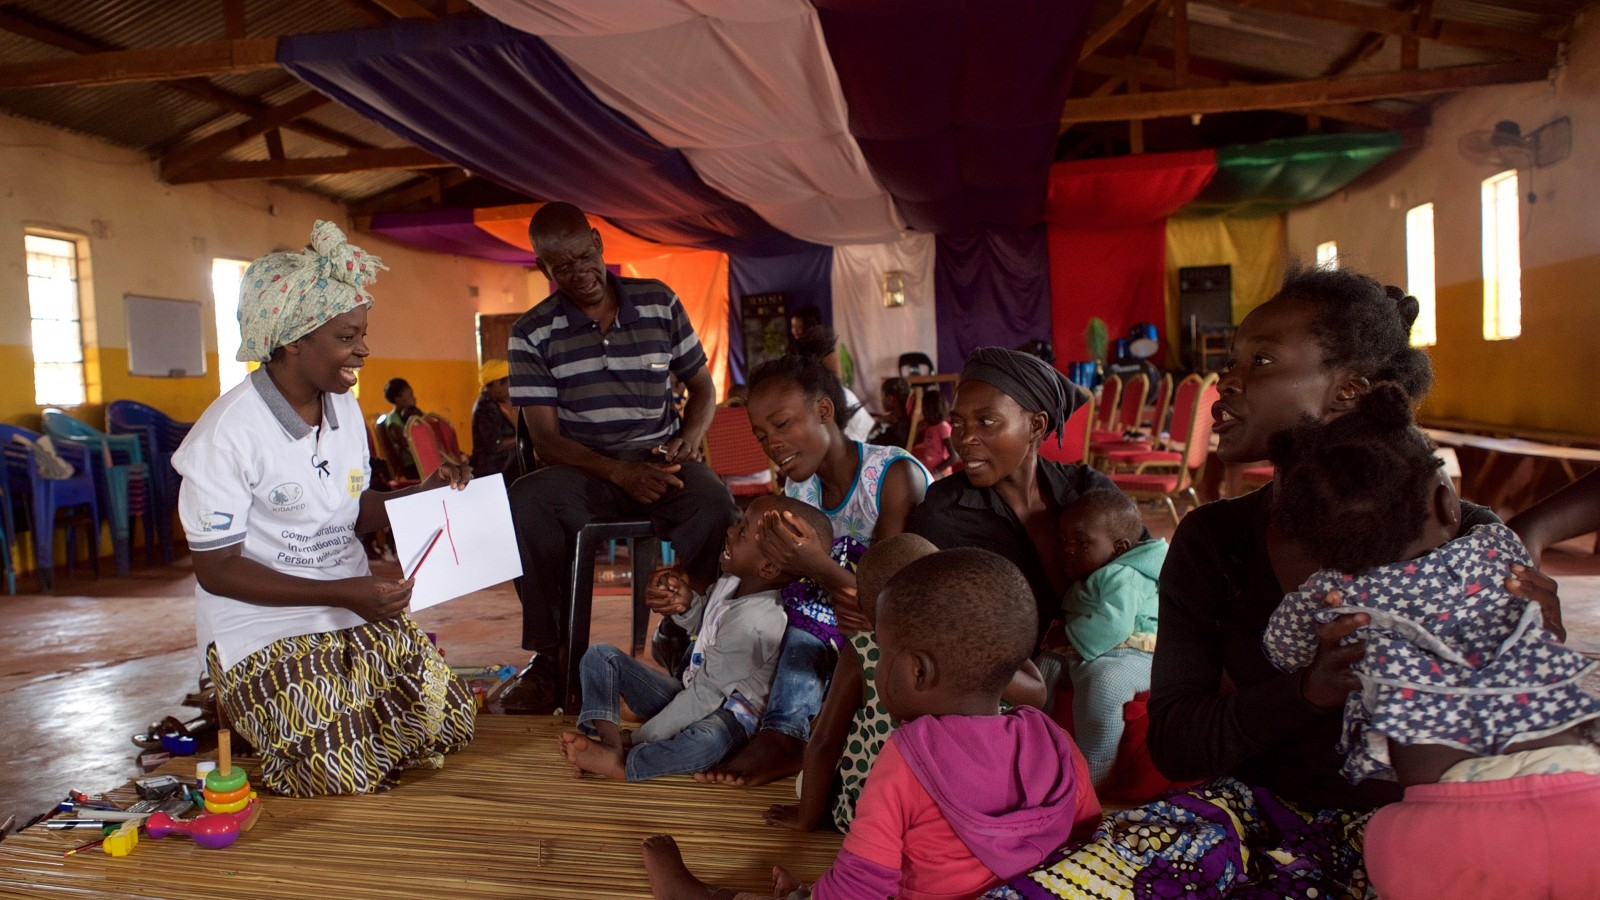 A support group for children with disabilities in Zambia